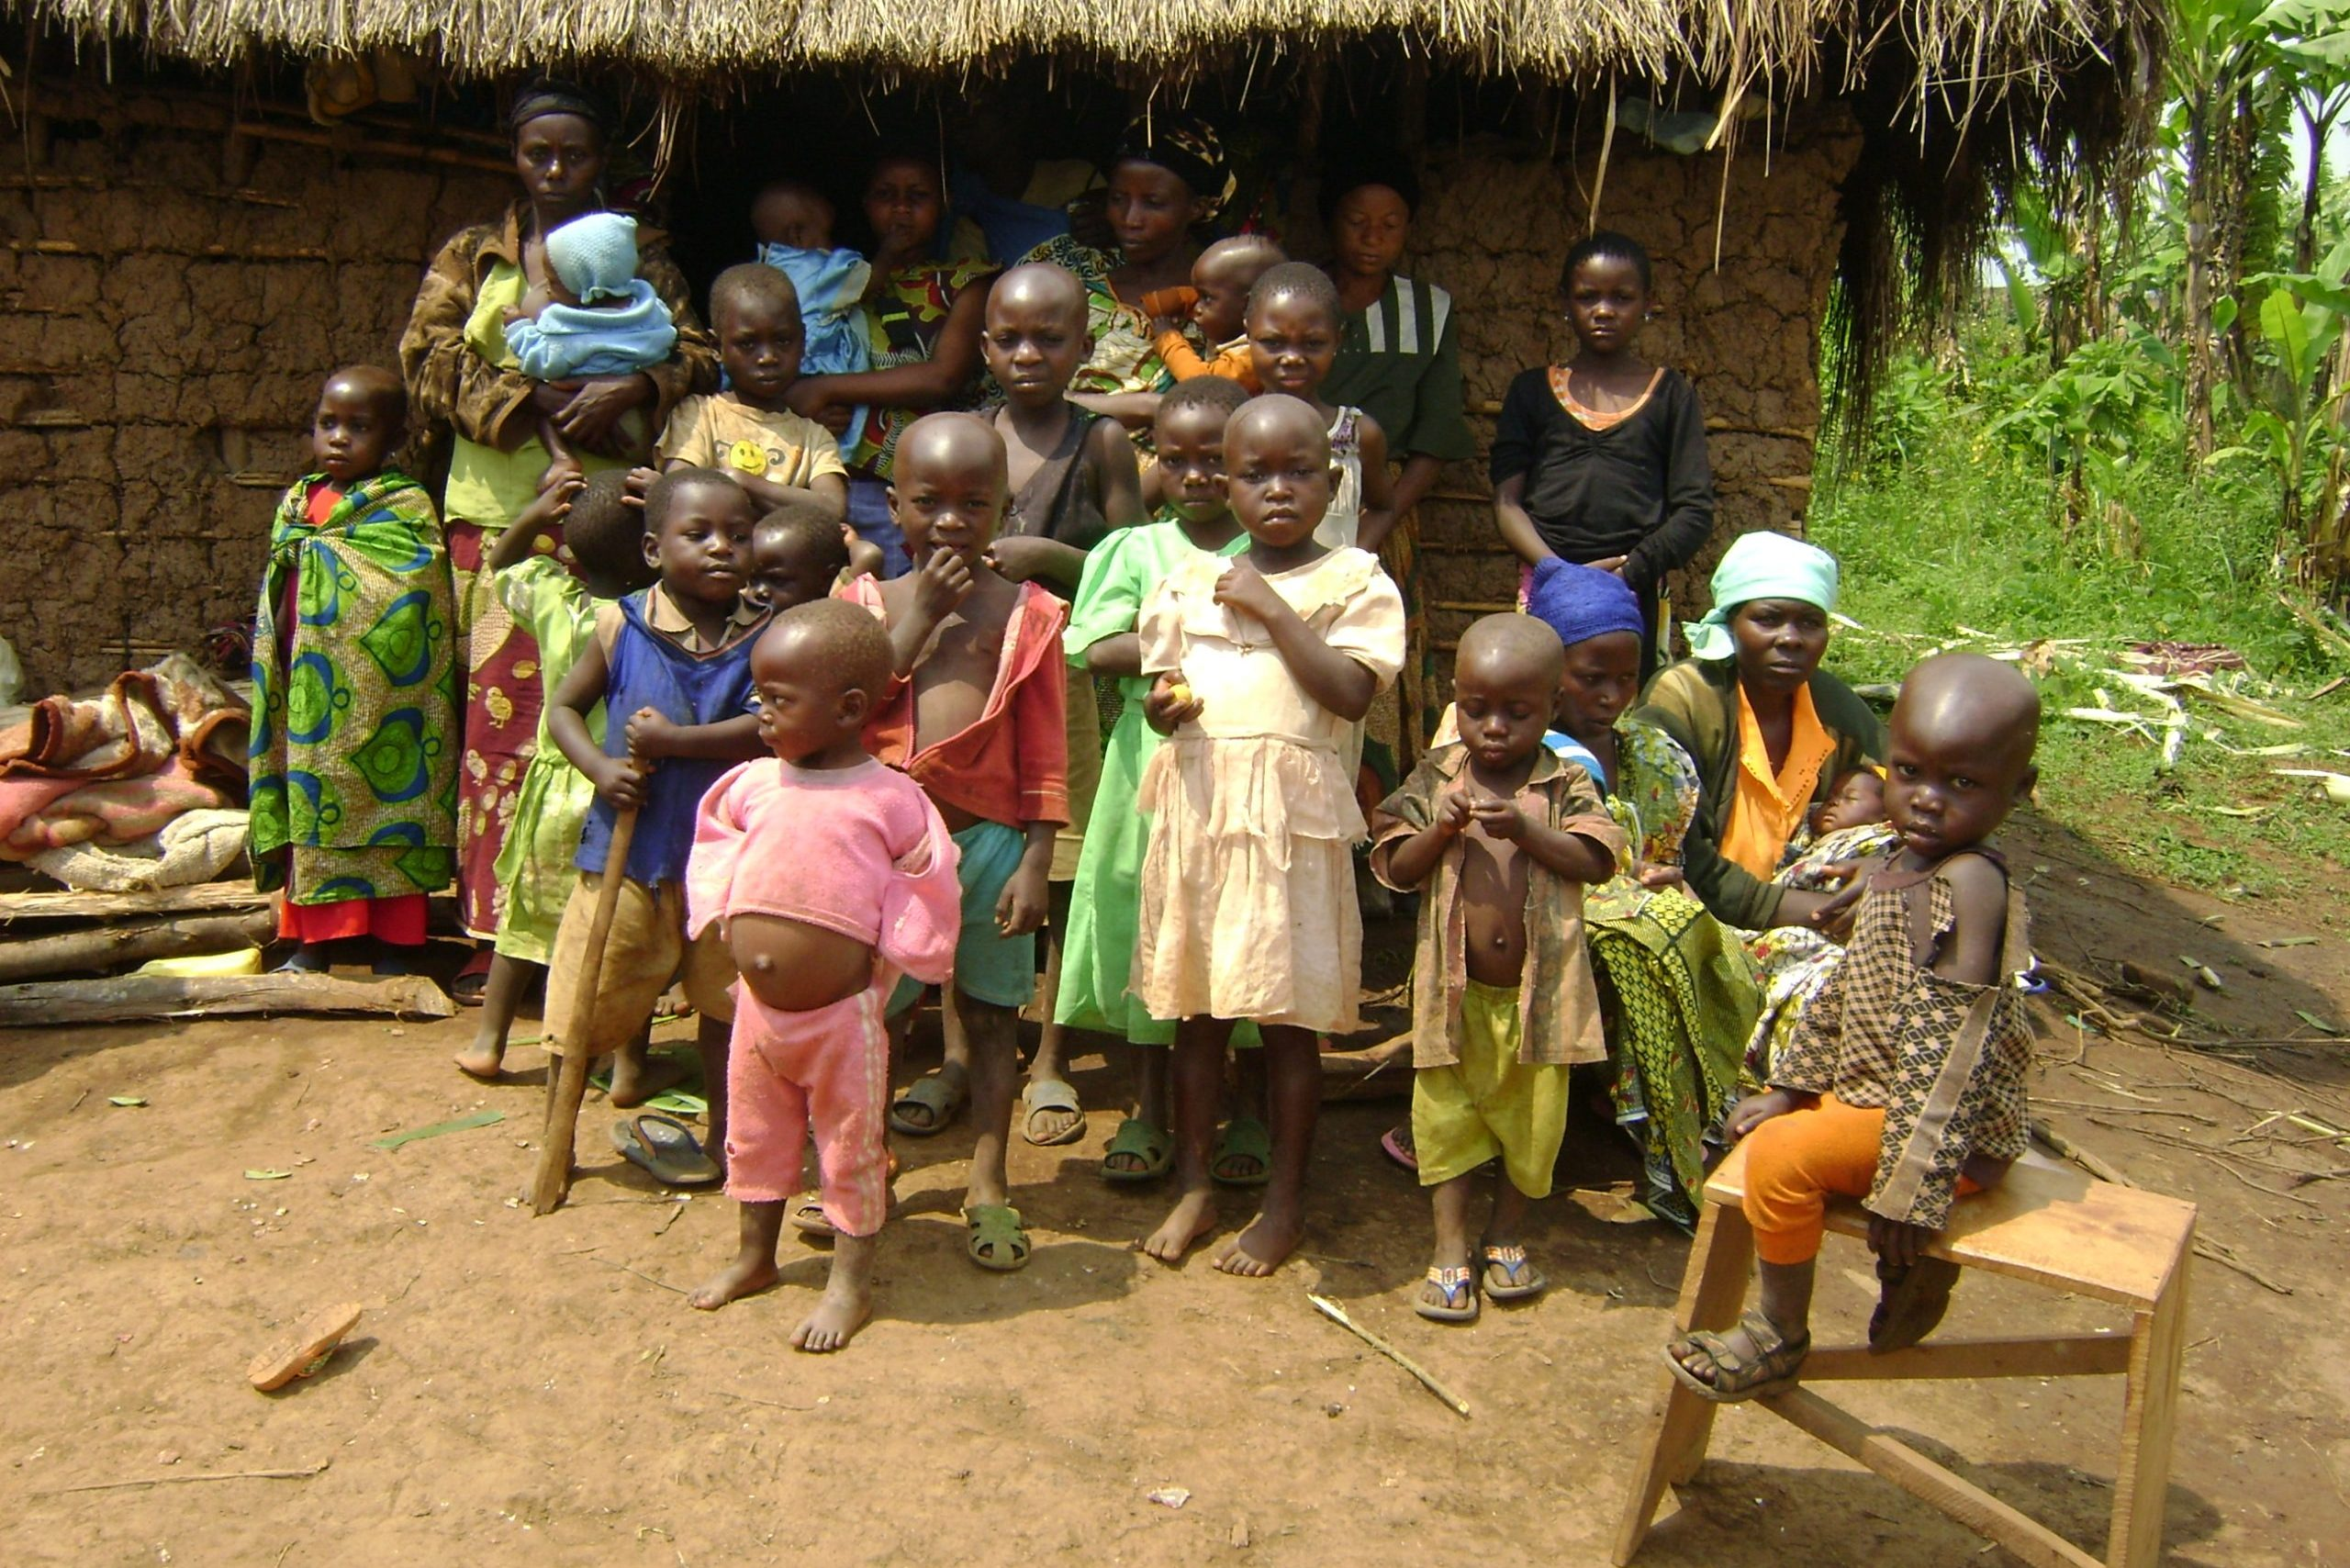 With image of refugees and IDPs in the east of the Democratic Republic of Congo (Image © Aid to the Church in Need)